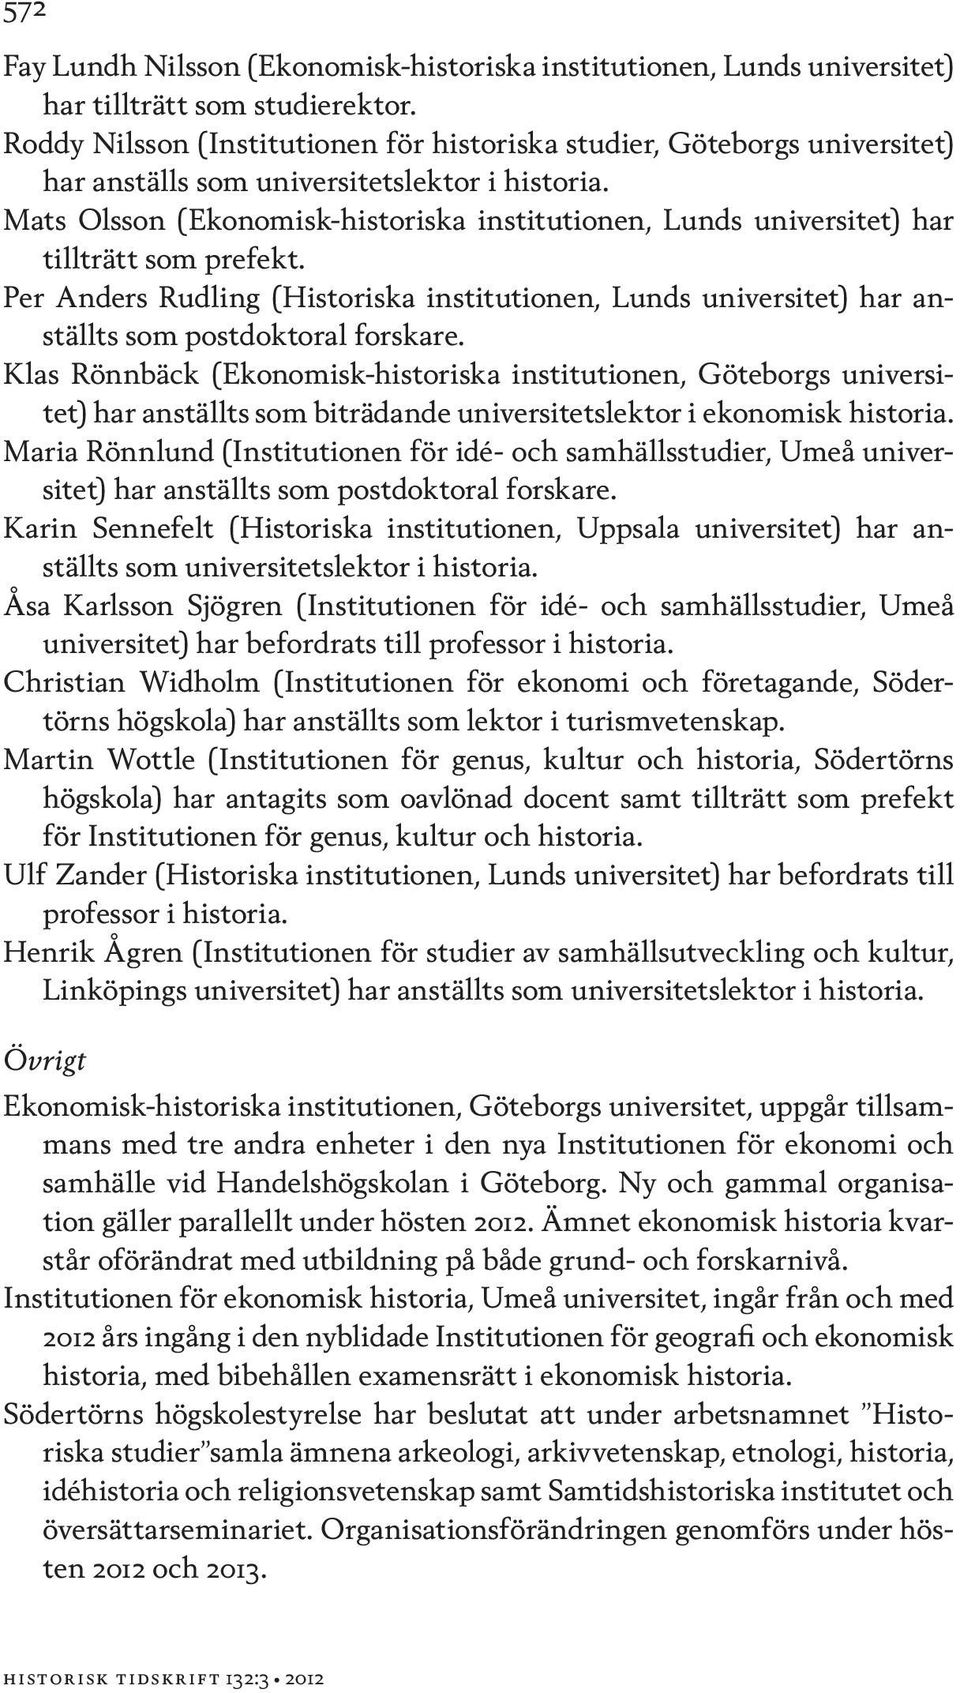 Mats Olsson (Ekonomisk-historiska institutionen, Lunds universitet) har tillträtt som prefekt. Per Anders Rudling (Historiska institutionen, Lunds universitet) har anställts som postdoktoral forskare.